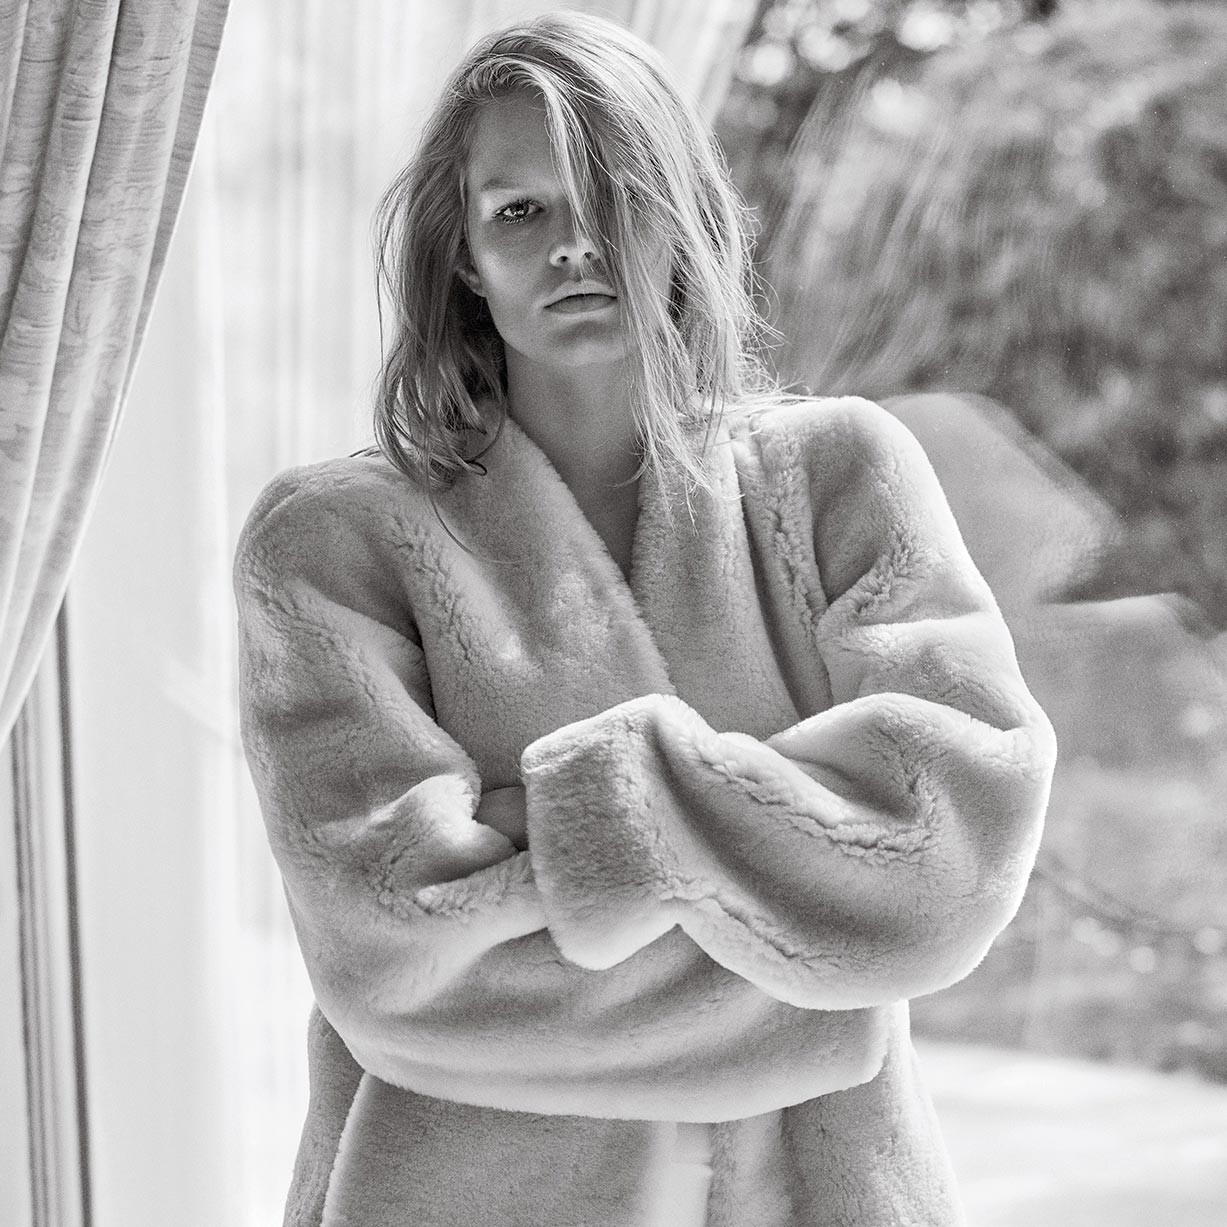 Anna Ewers by Mario Sorrenti - V Magazine winter 2017